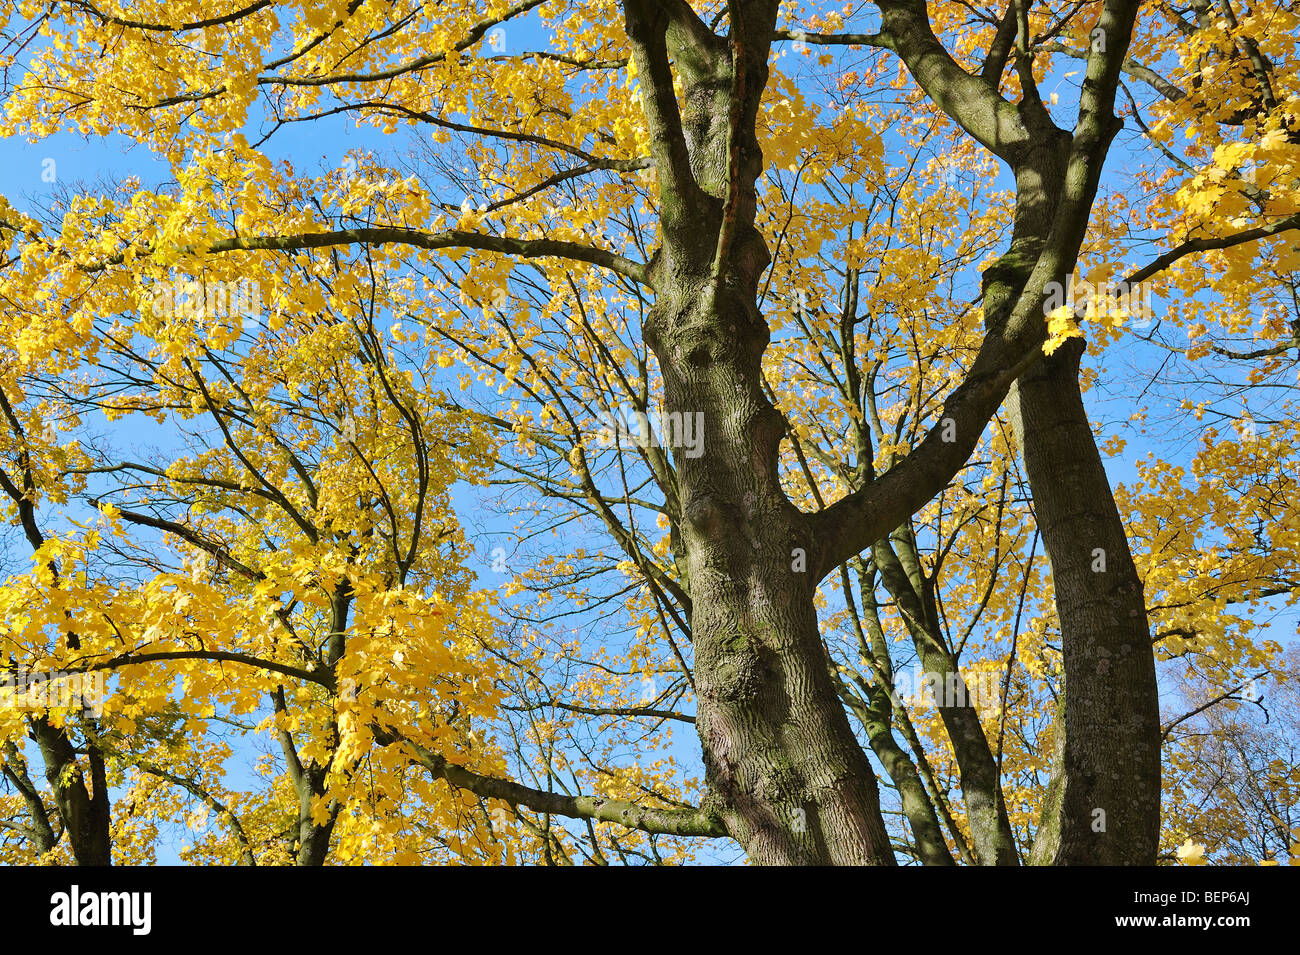 Norway maple tree (Acer platanoides) in autumn colours - Stock Image